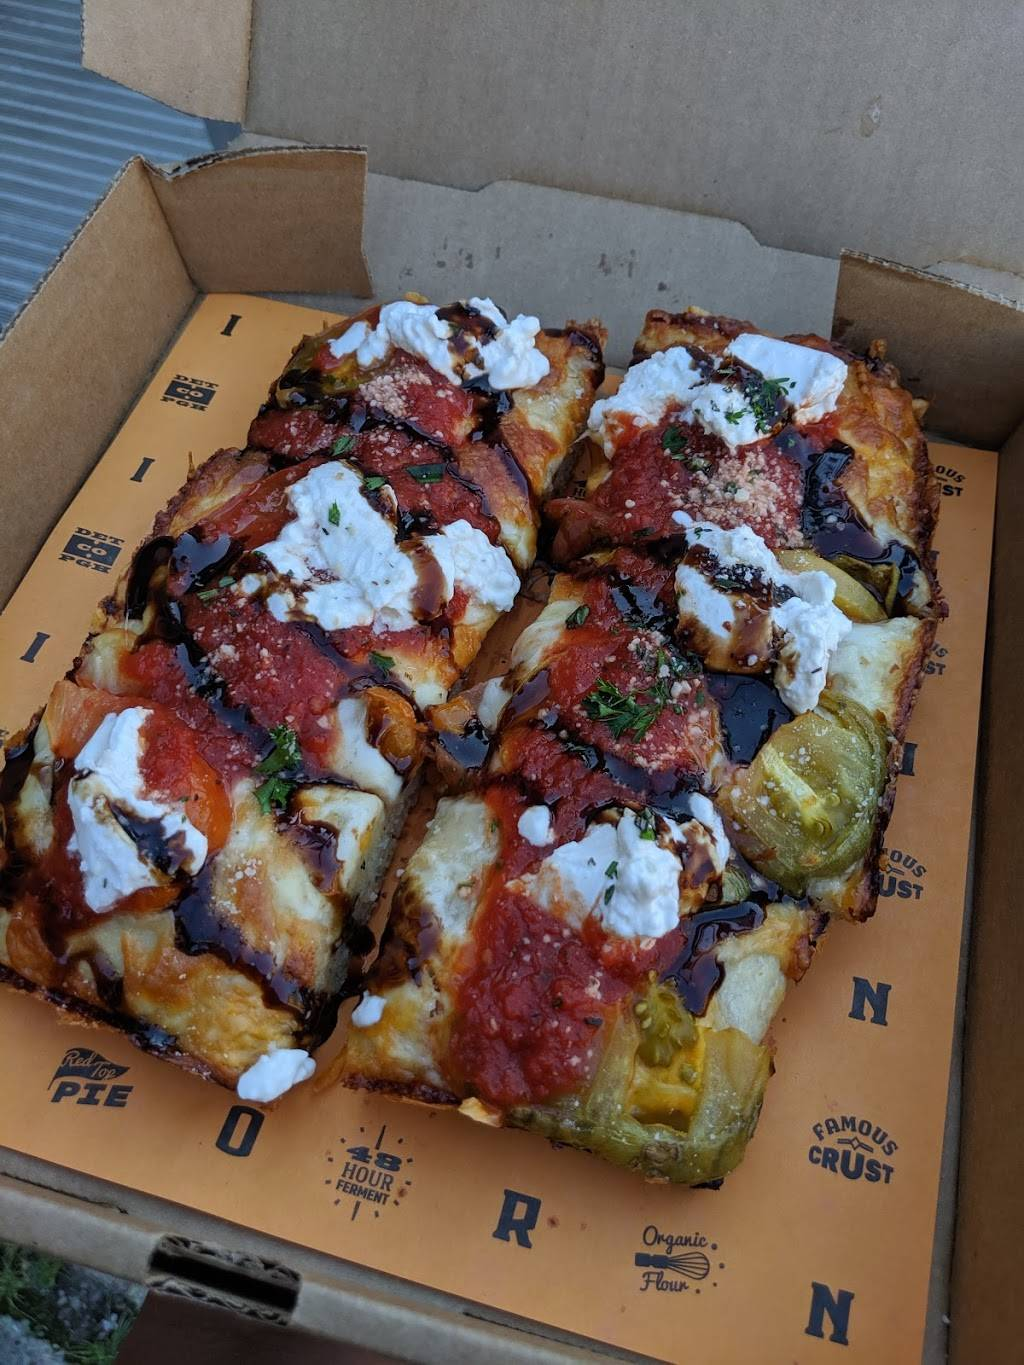 Iron Born Pizza   meal takeaway   413 Grant Ave, Pittsburgh, PA 15209, USA   4128227300 OR +1 412-822-7300